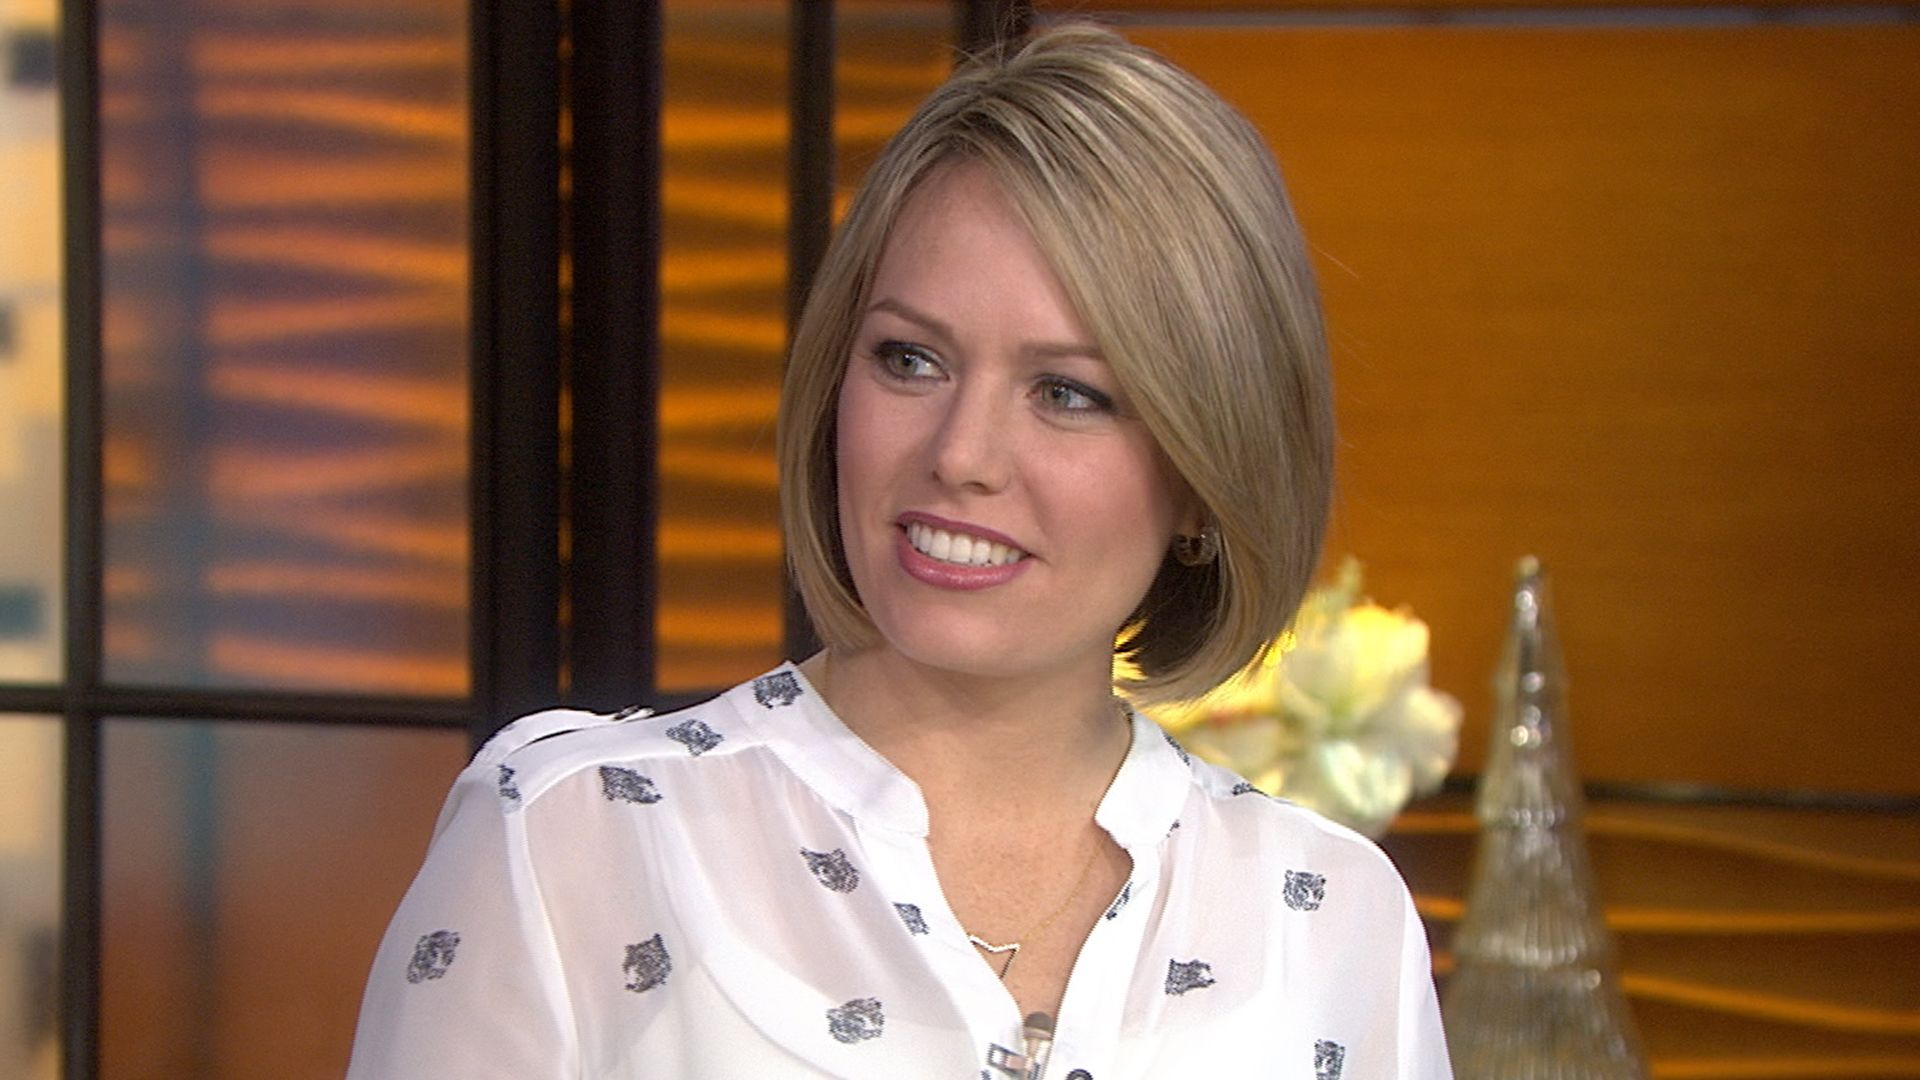 best images about natalie morales dylan dryer tamron hall on 17 best images about natalie morales dylan dryer tamron hall rich list fashion designers and new jersey